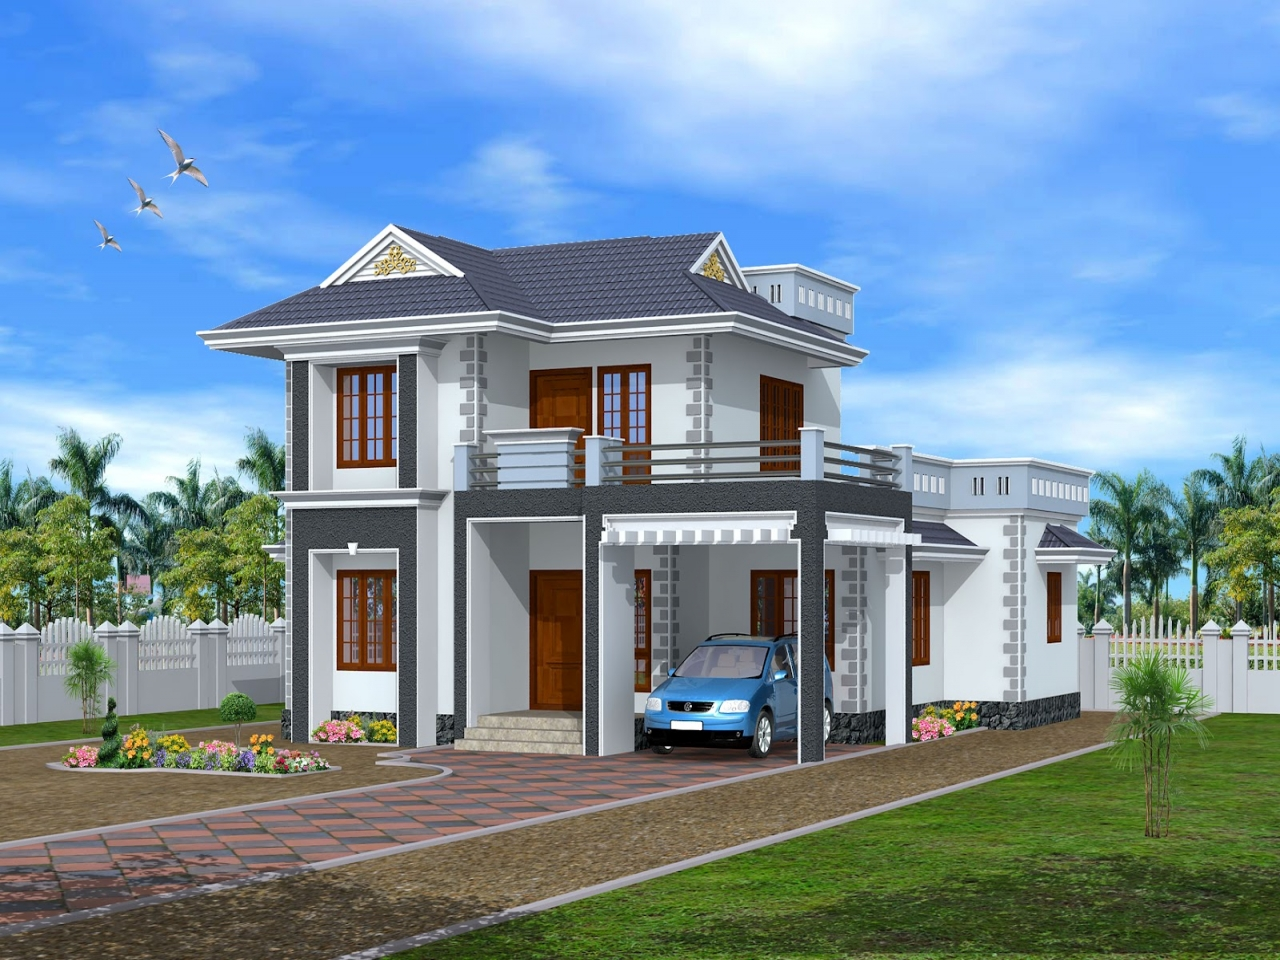 Kerala architecture 1st floor design kerala home design for Architecture design kerala house